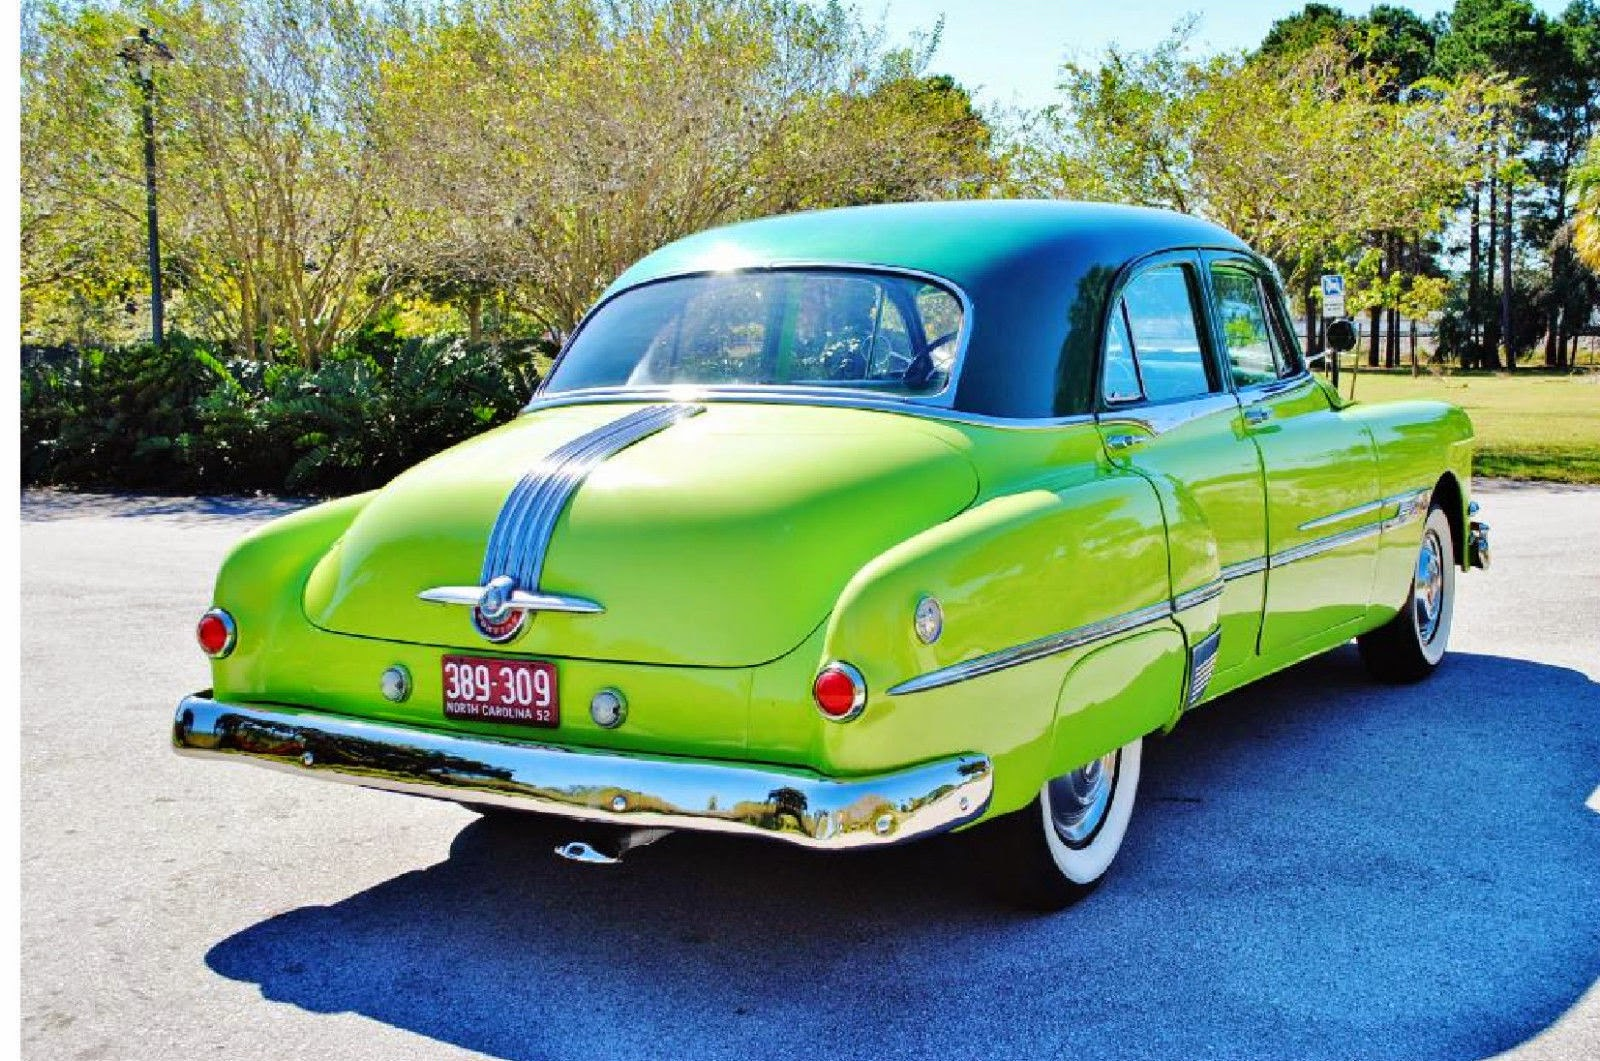 1952 pontiac chieftain pictures to pin on pinterest for 1955 pontiac chieftain 4 door